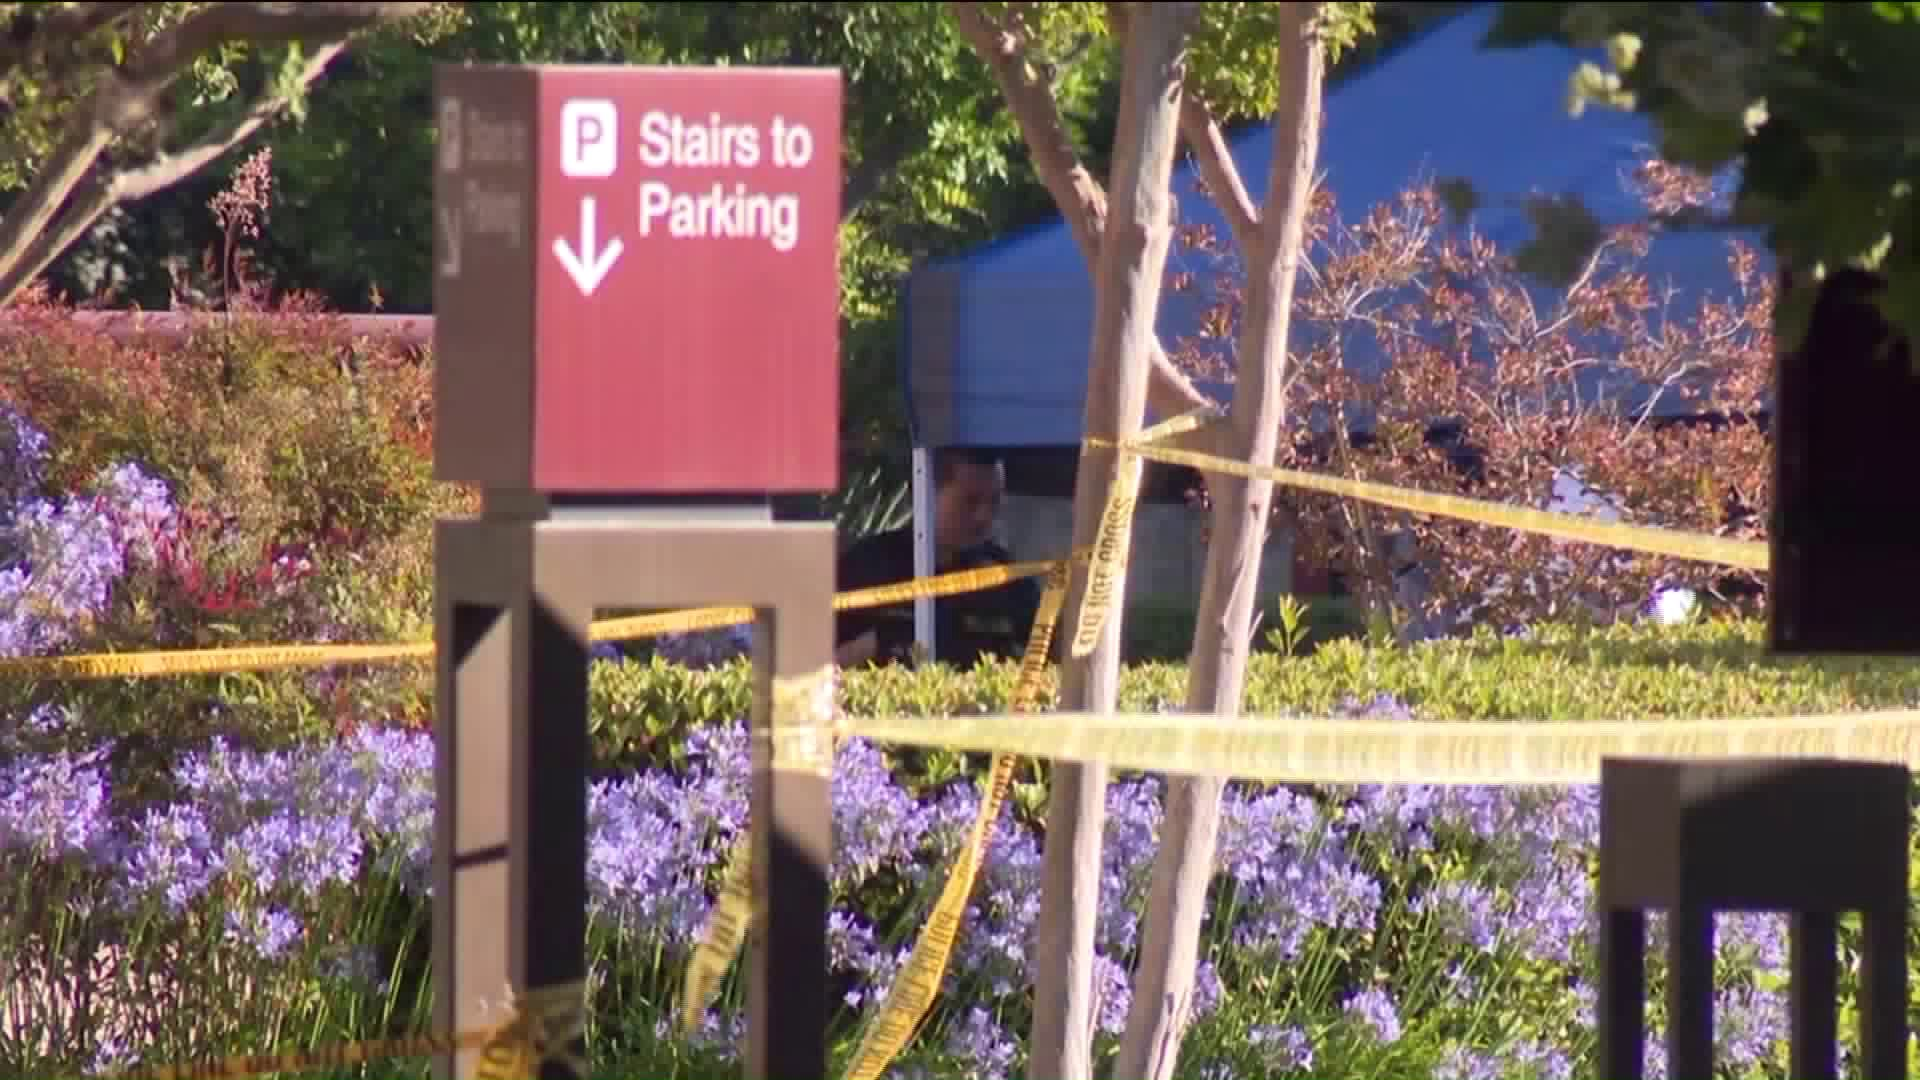 Detectives investigate the death of a woman whose body was discovered in a parking lot in the 100 block of Alessandro Place in Pasadena on July 14, 2019. (Credit: KTLA)